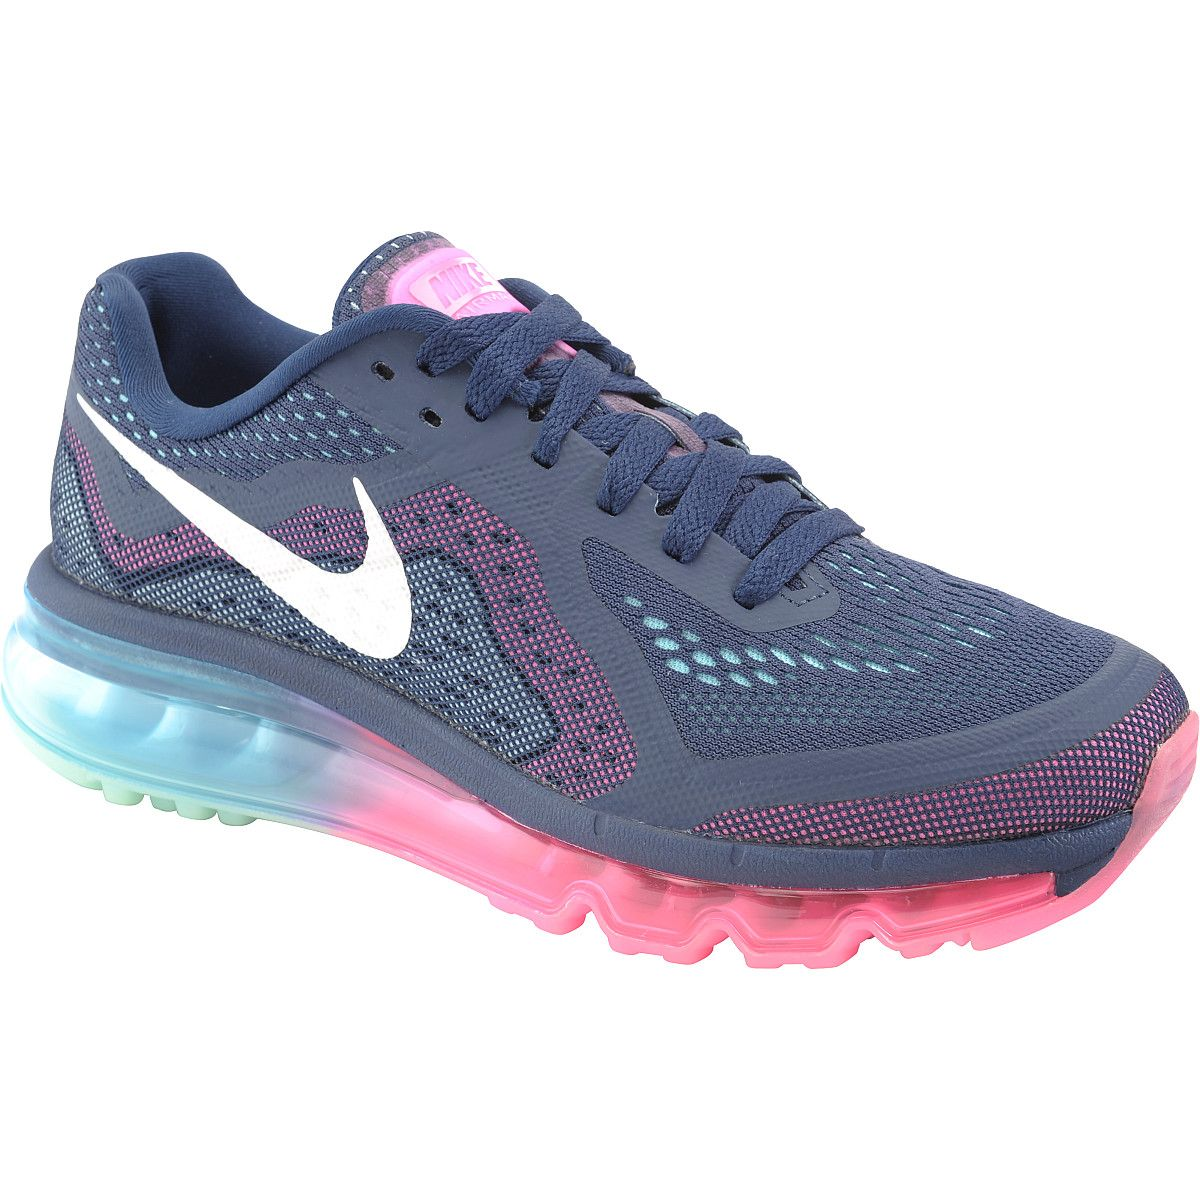 detailed look 8b636 425ed ... denmark nike womens air max 2014 running shoes sportsauthority 29263  aac1c